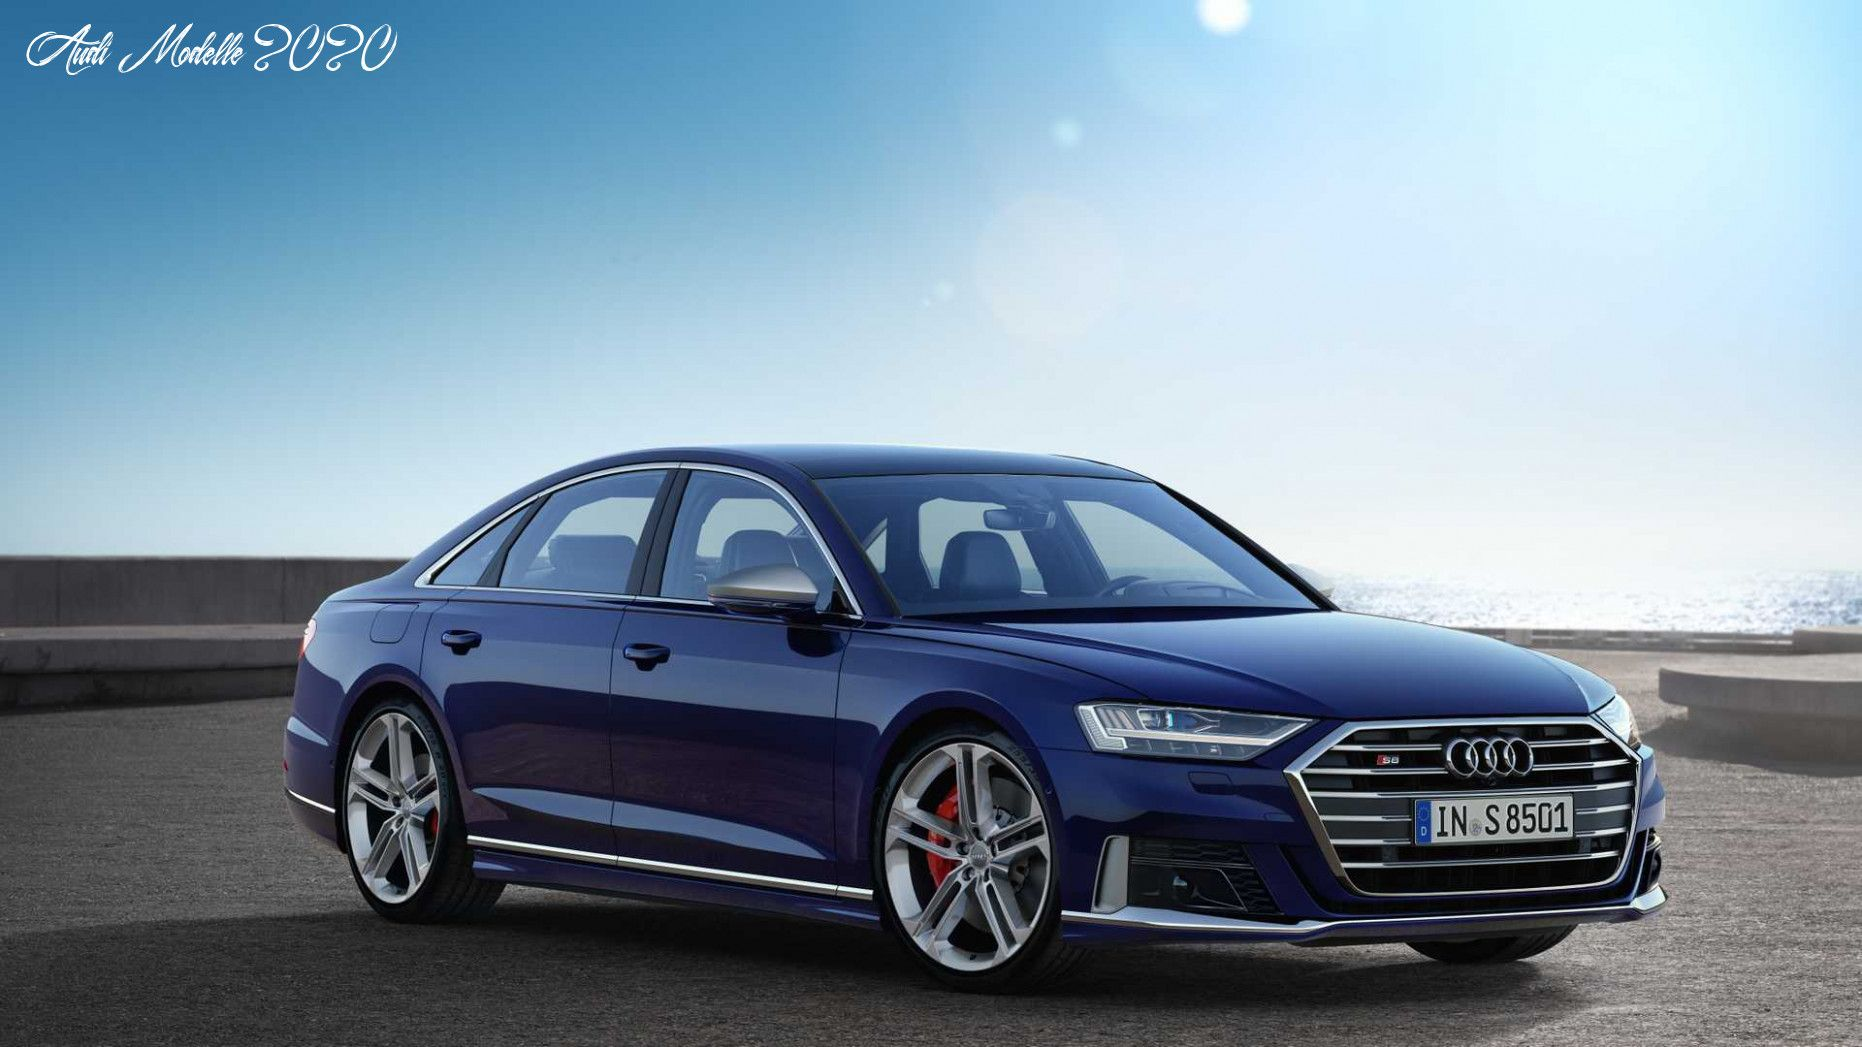 Audi Modelle 2020 New Model And Performance In 2020 Audi Car Twin Turbo